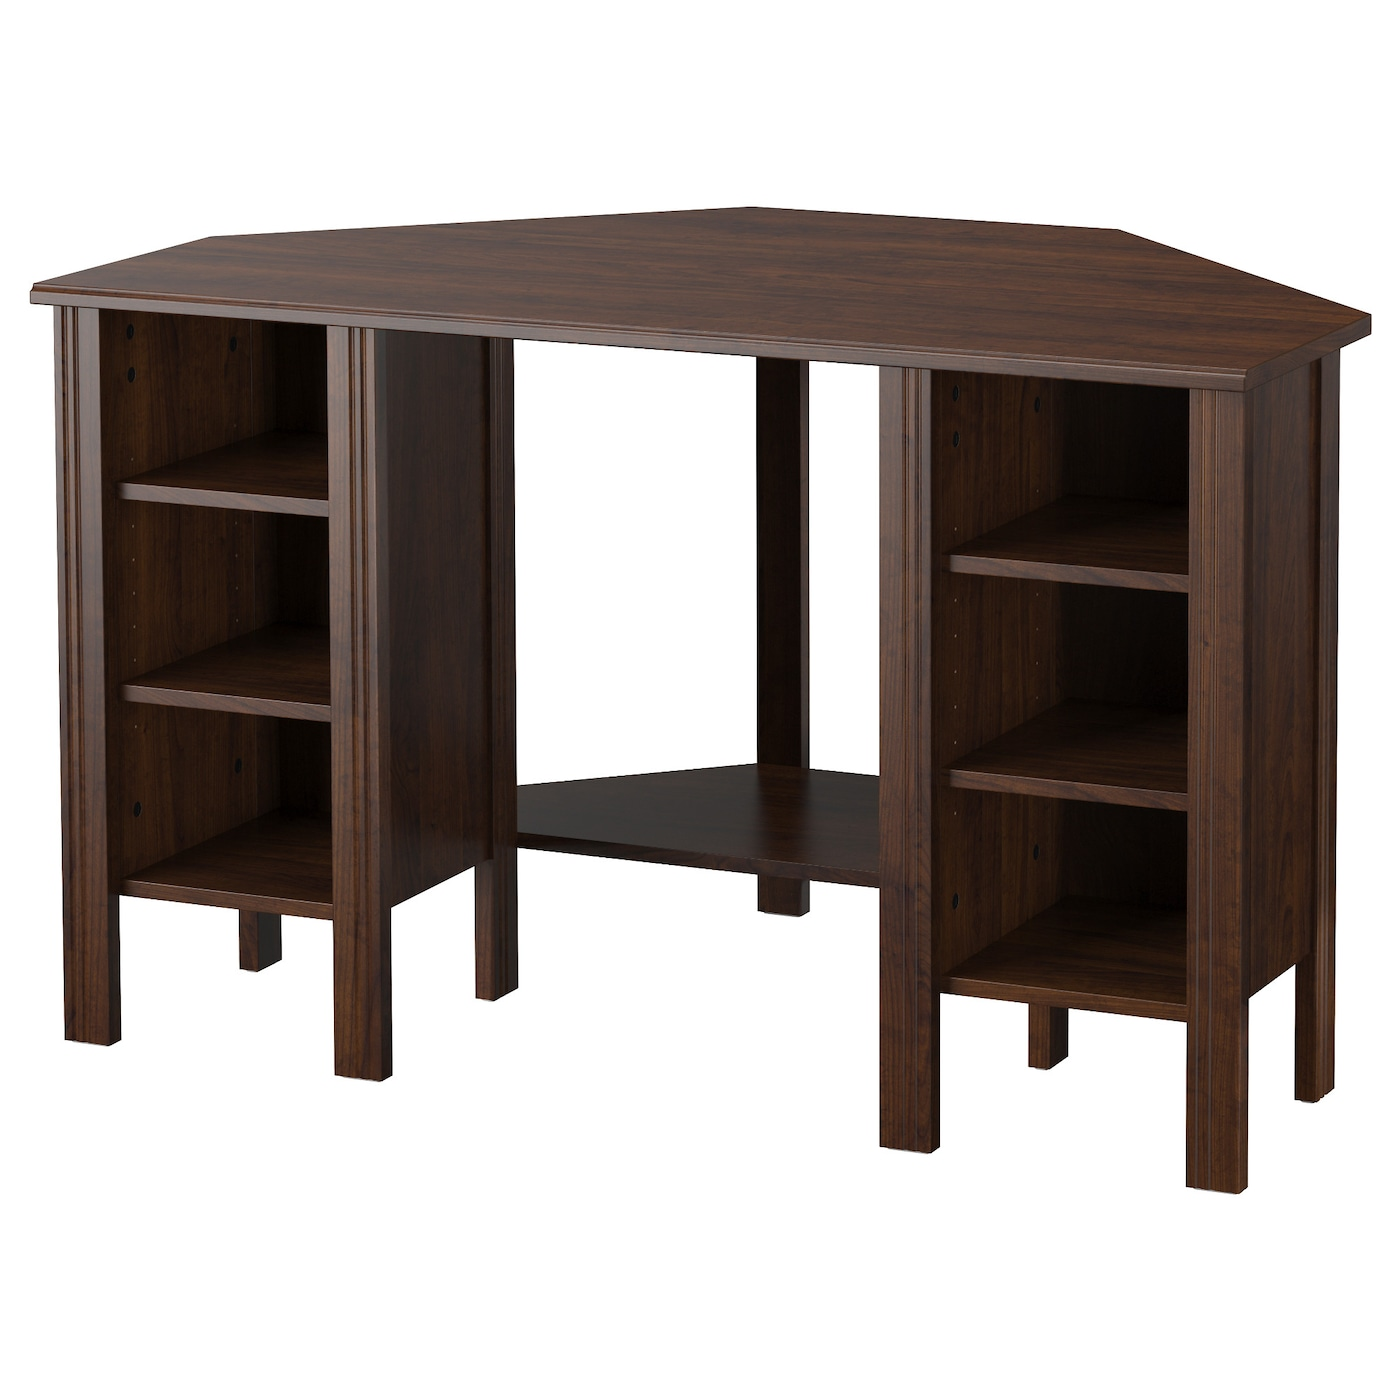 Brusali corner desk brown 120x73 cm ikea - Corner desks with shelves ...